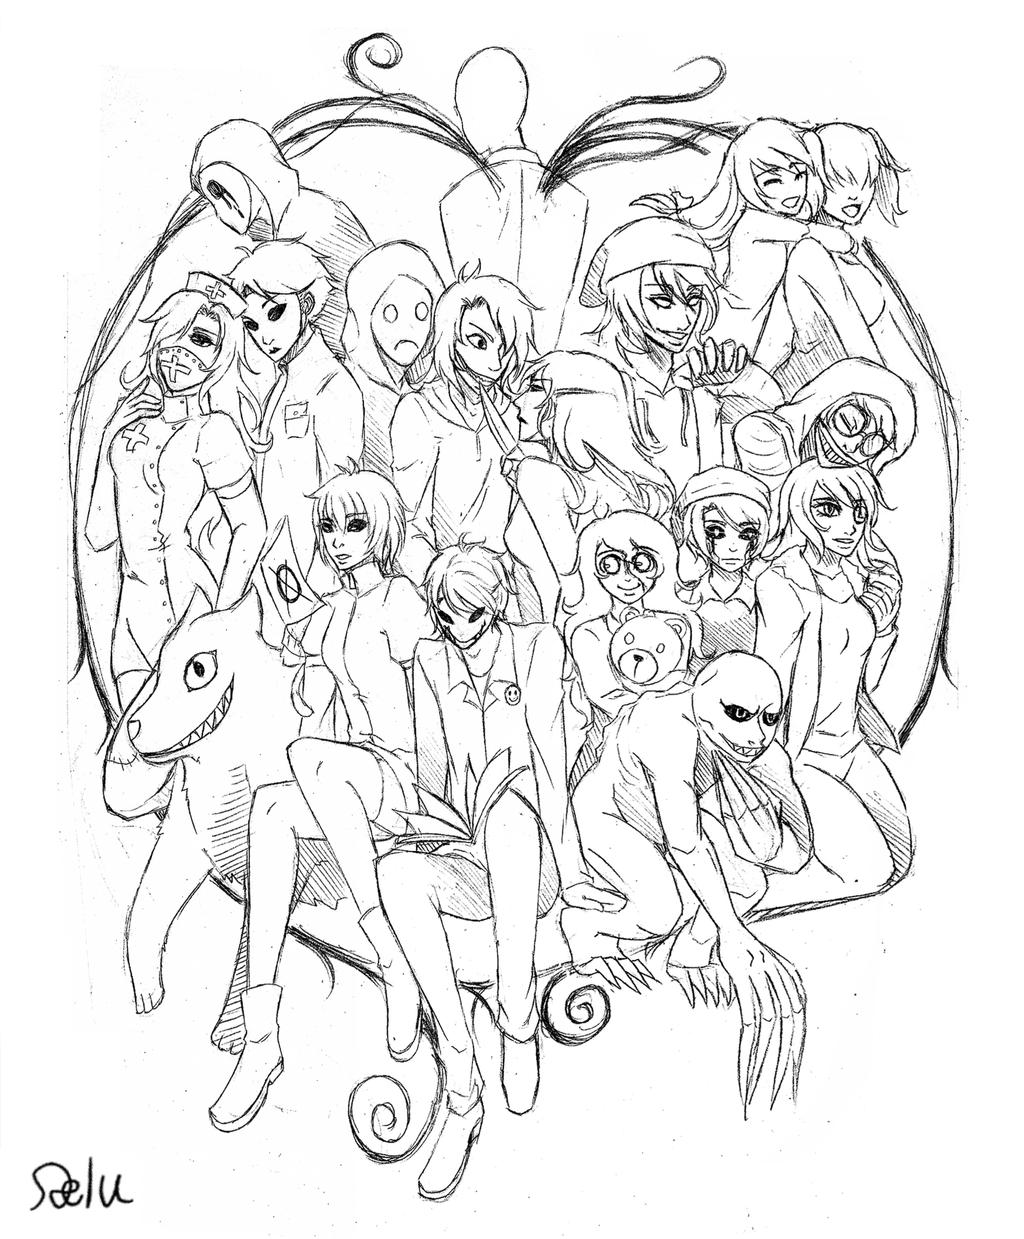 creepypasta coloring pages online - photo#34